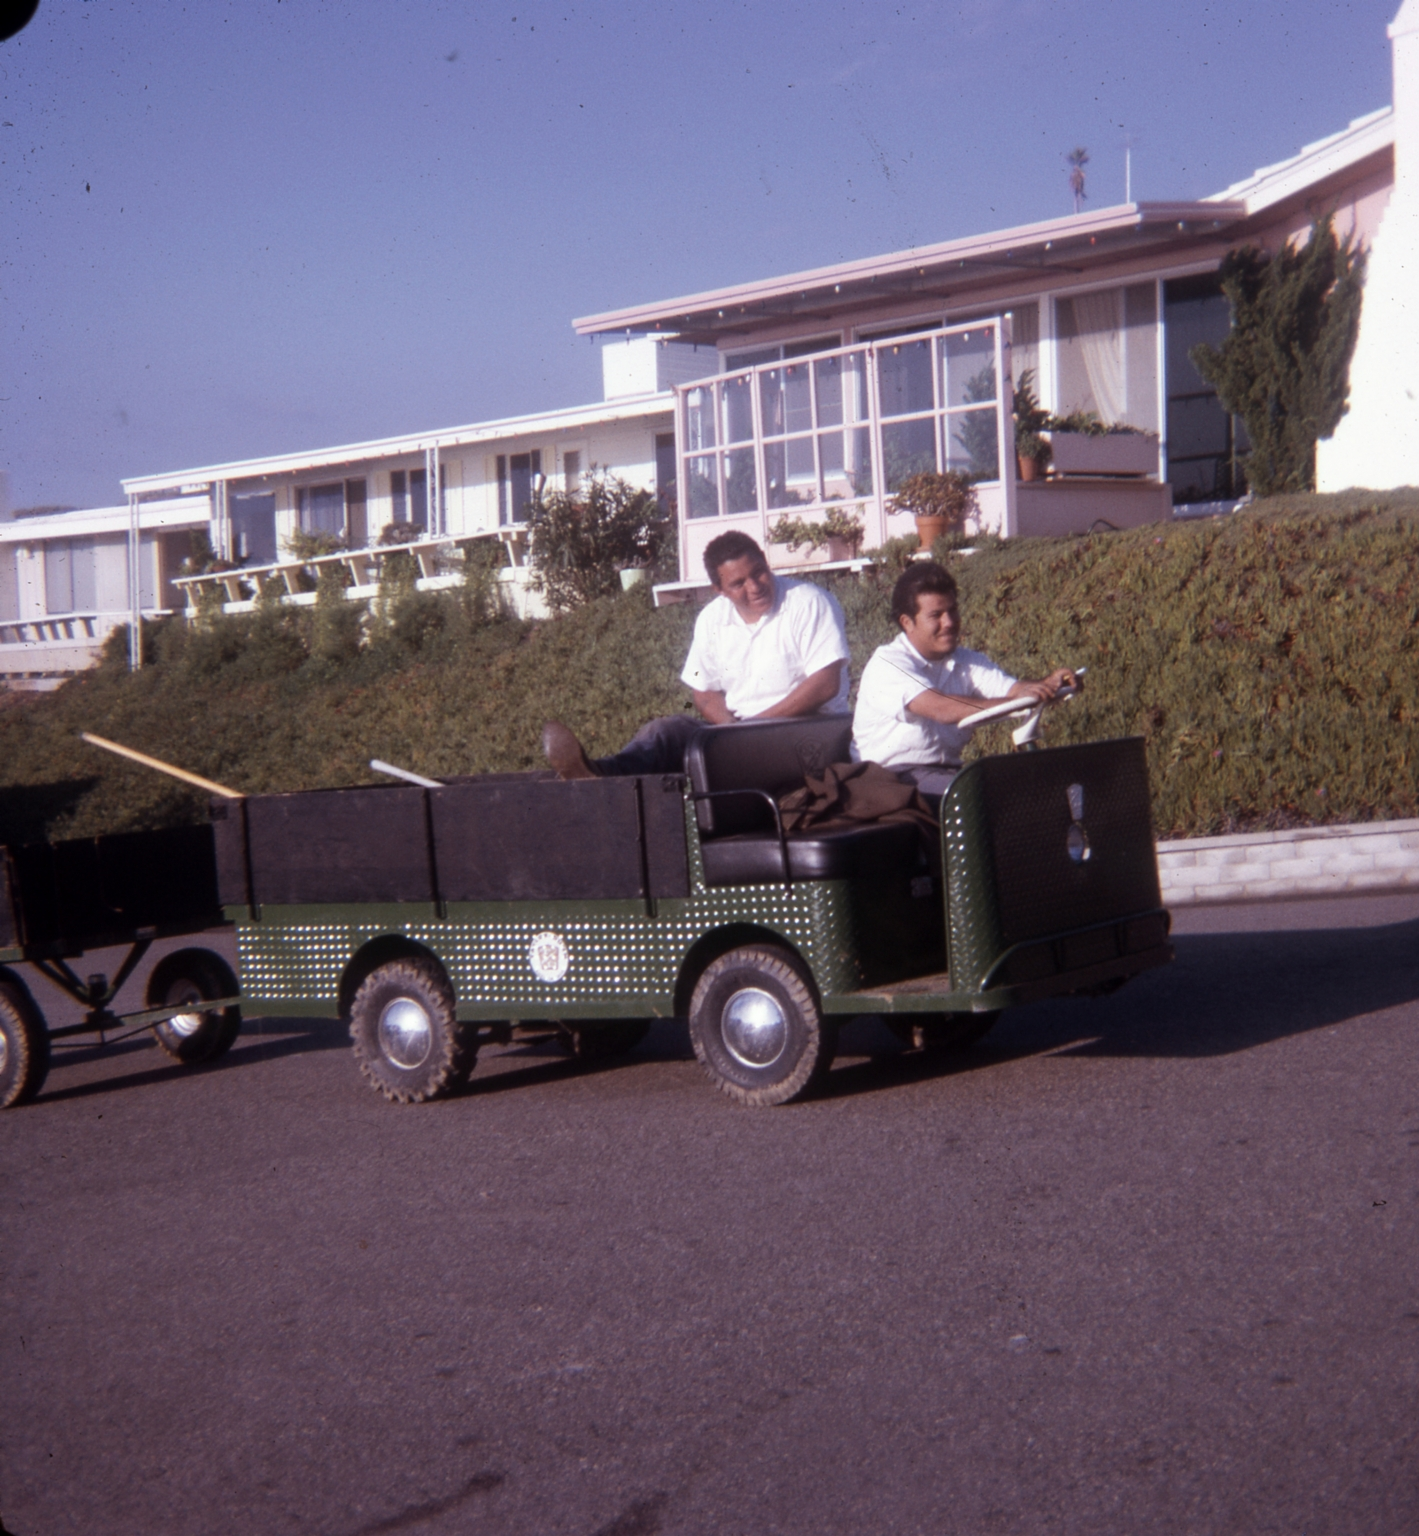 Two employees of the Dana Strand Club in an electric cart, with a residence in the background.